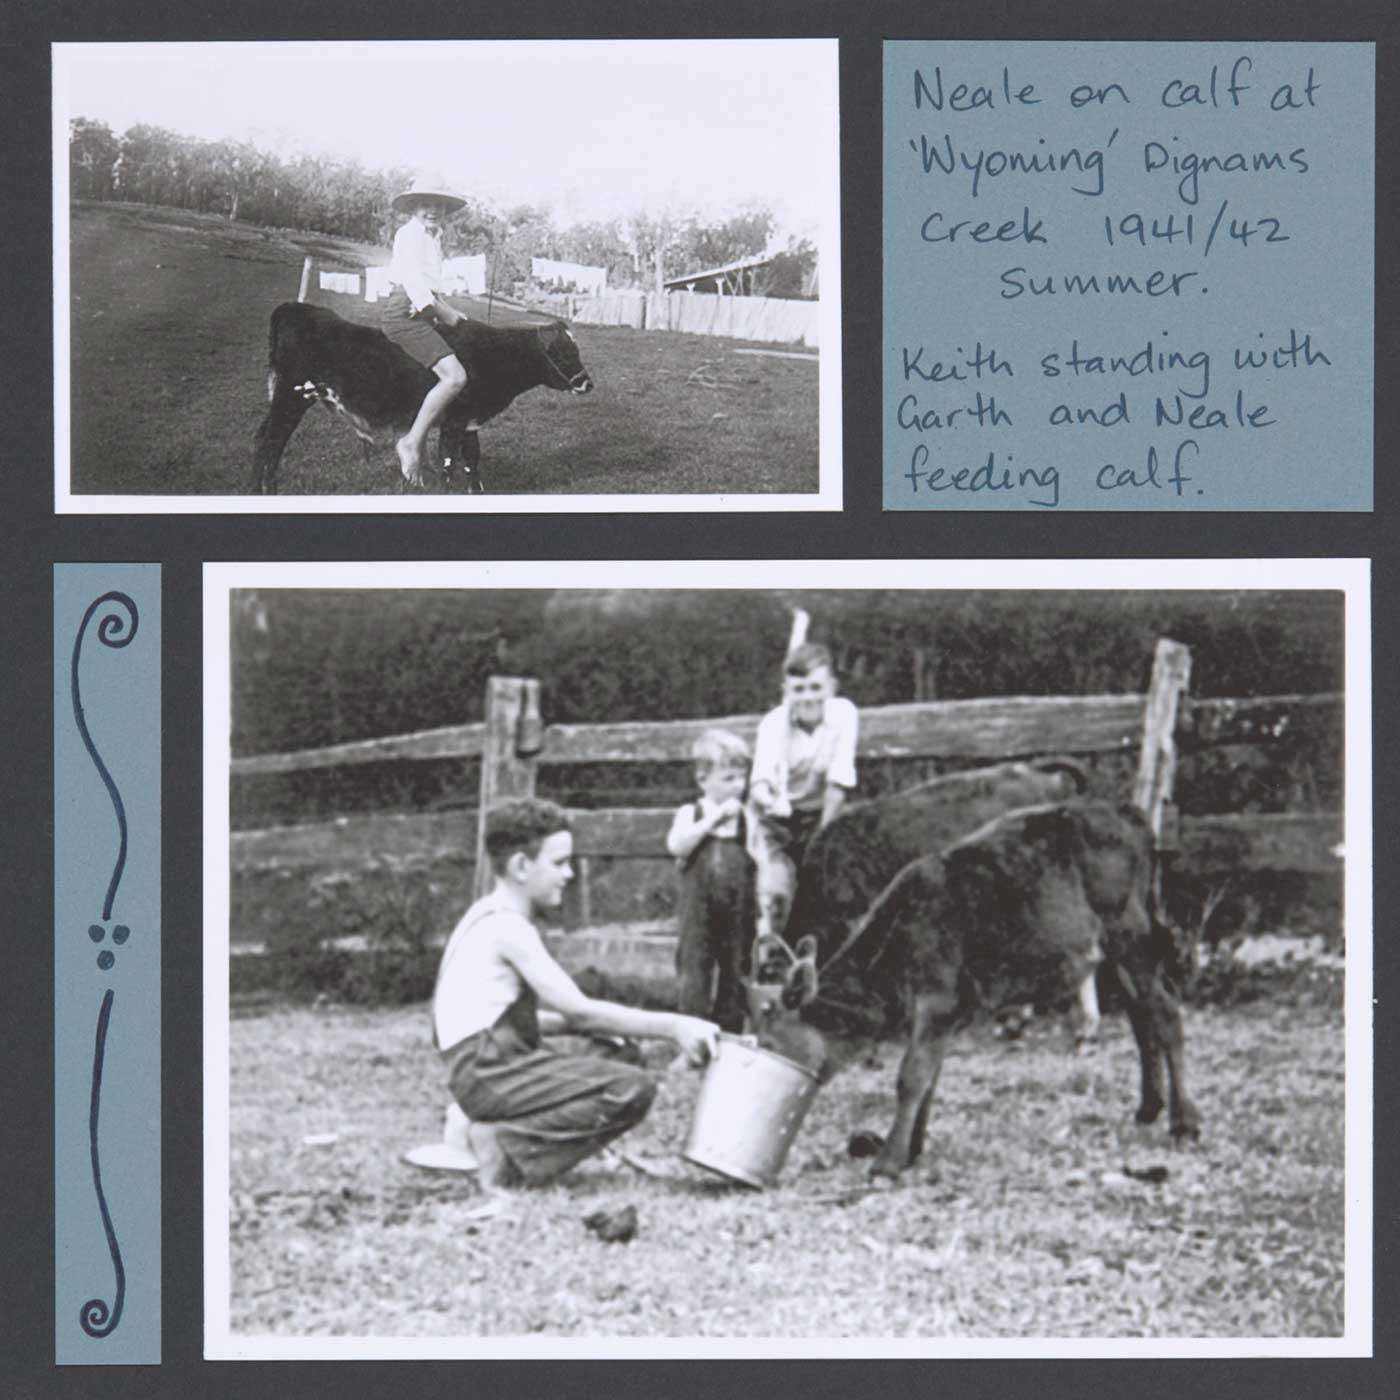 Neale's first rough-riding experiences, and learning care of cattle - click to view larger image